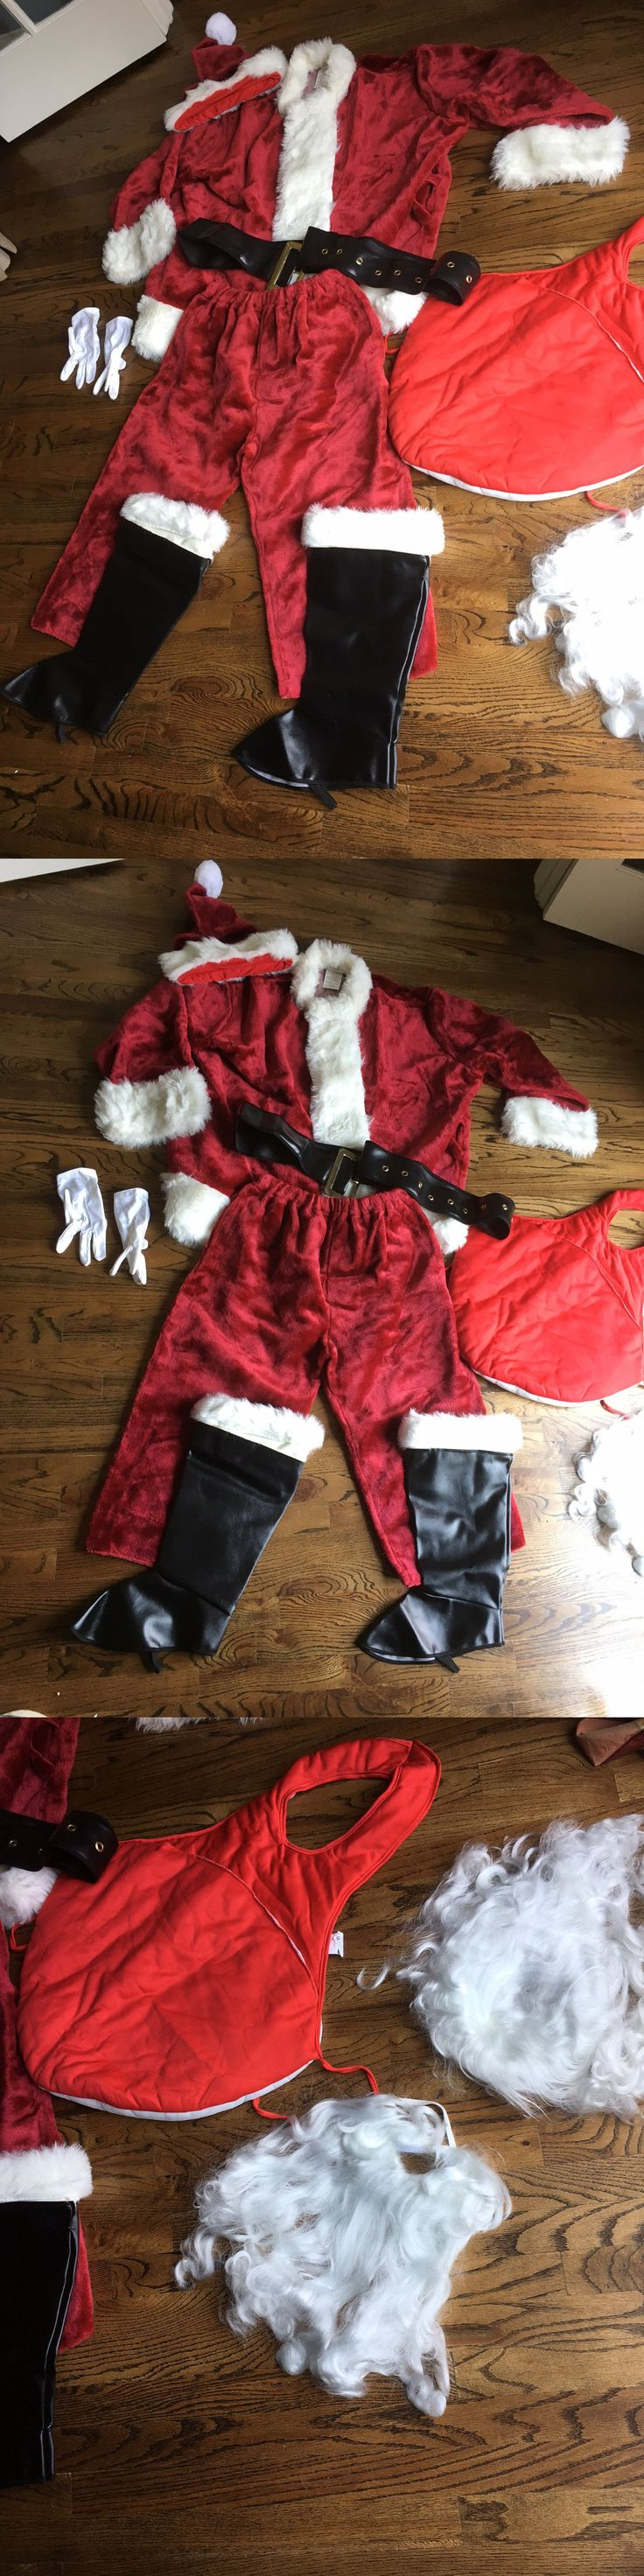 Halloween Costumes Men: Santa Claus Costume Adult Mens Deluxe Suit Christmas Outfit -> BUY IT NOW ONLY: $85 on eBay!